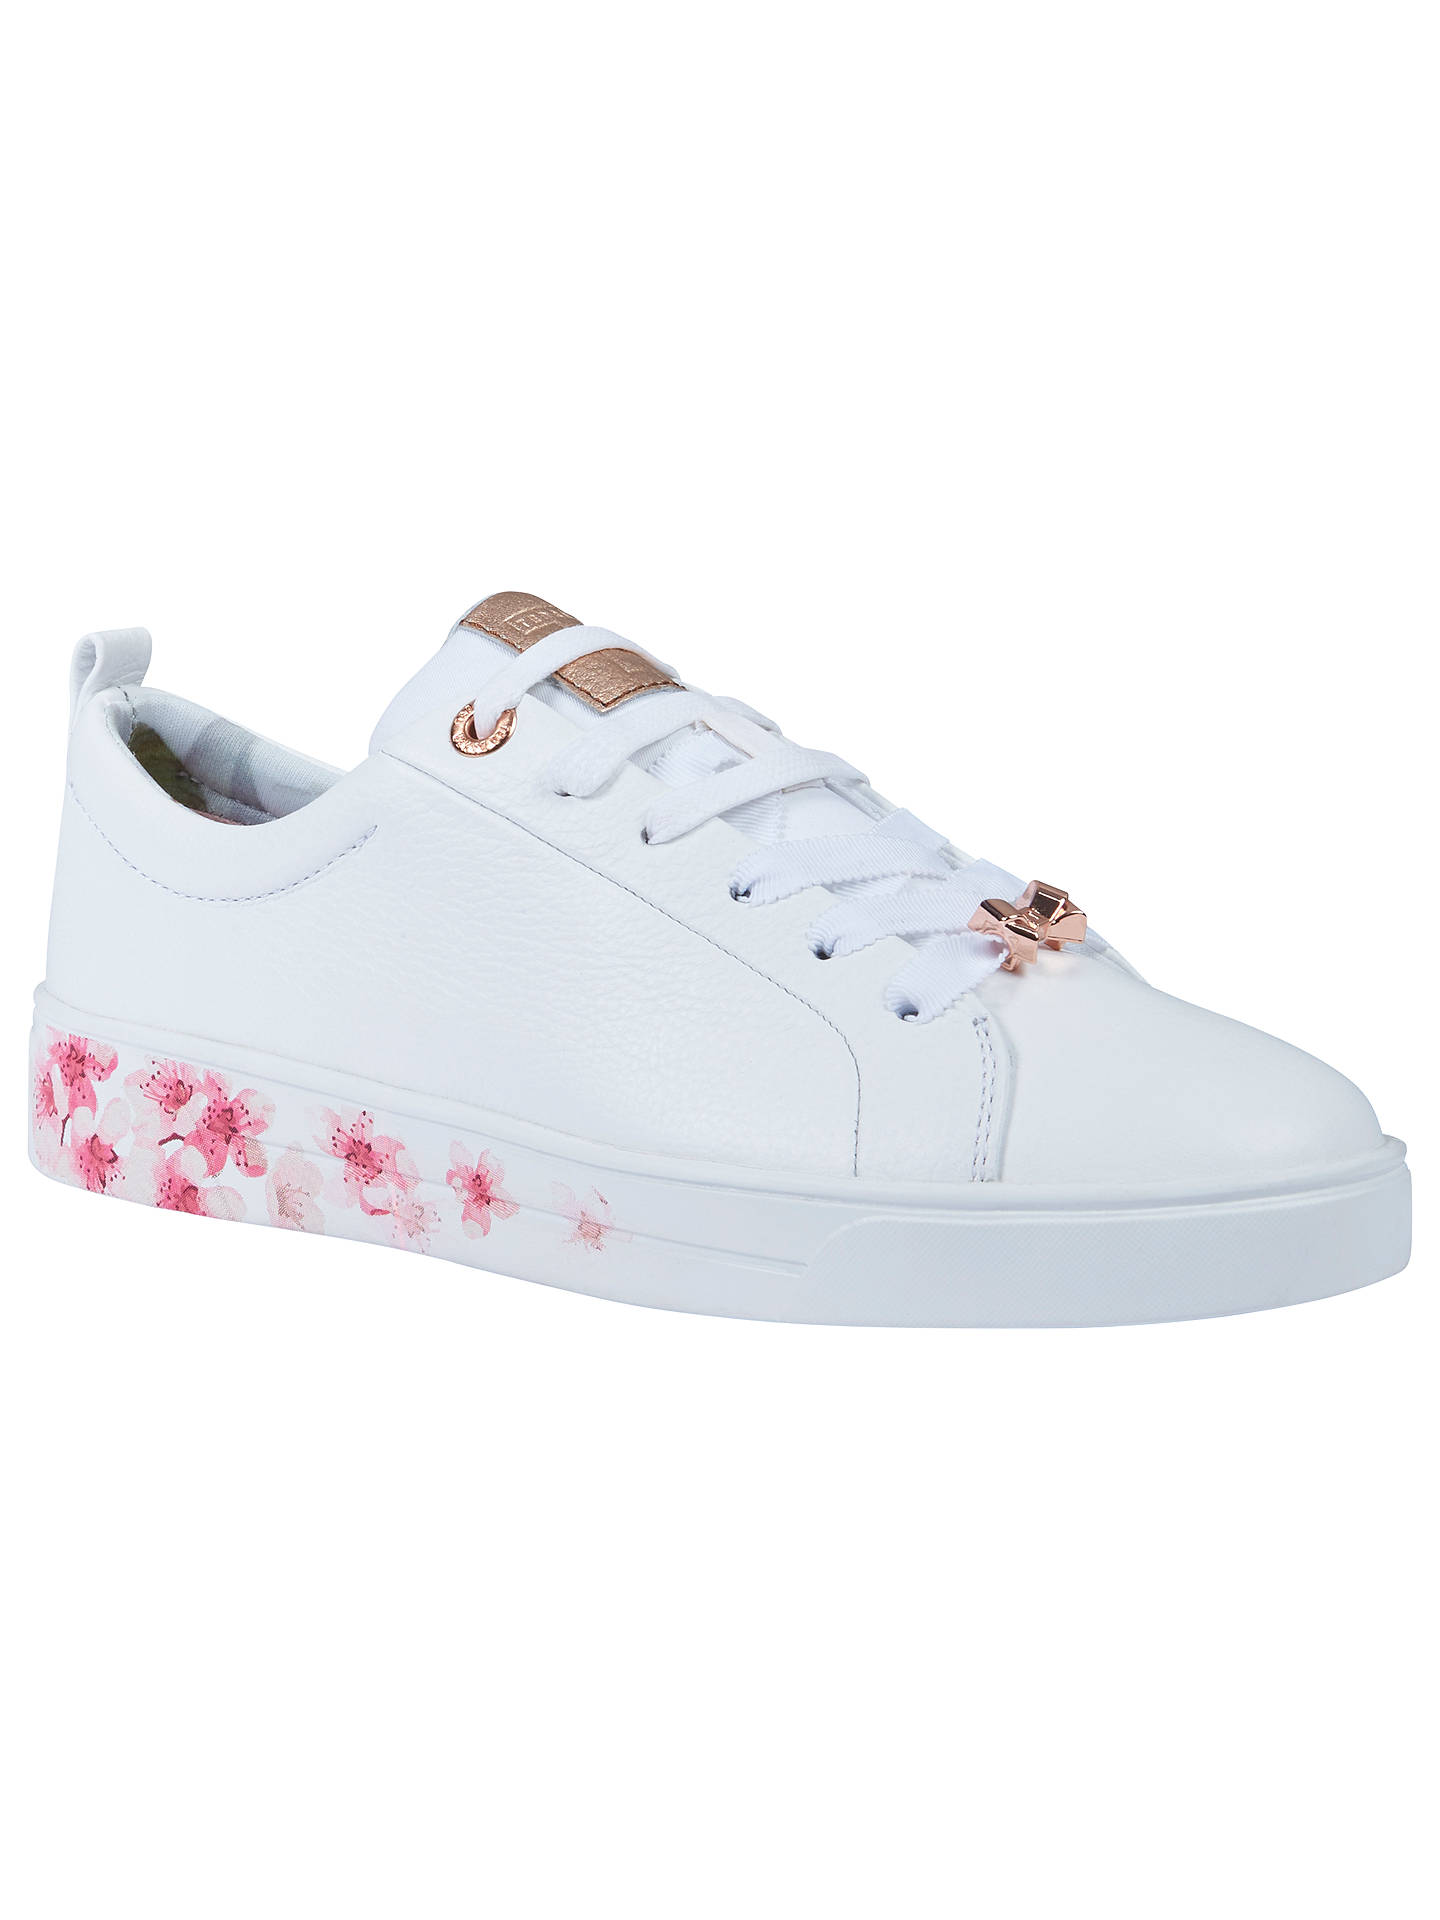 b1c99e0e7 Buy Ted Baker Kelleip Low Top Trainers, White Blossom, 4 Online at  johnlewis.